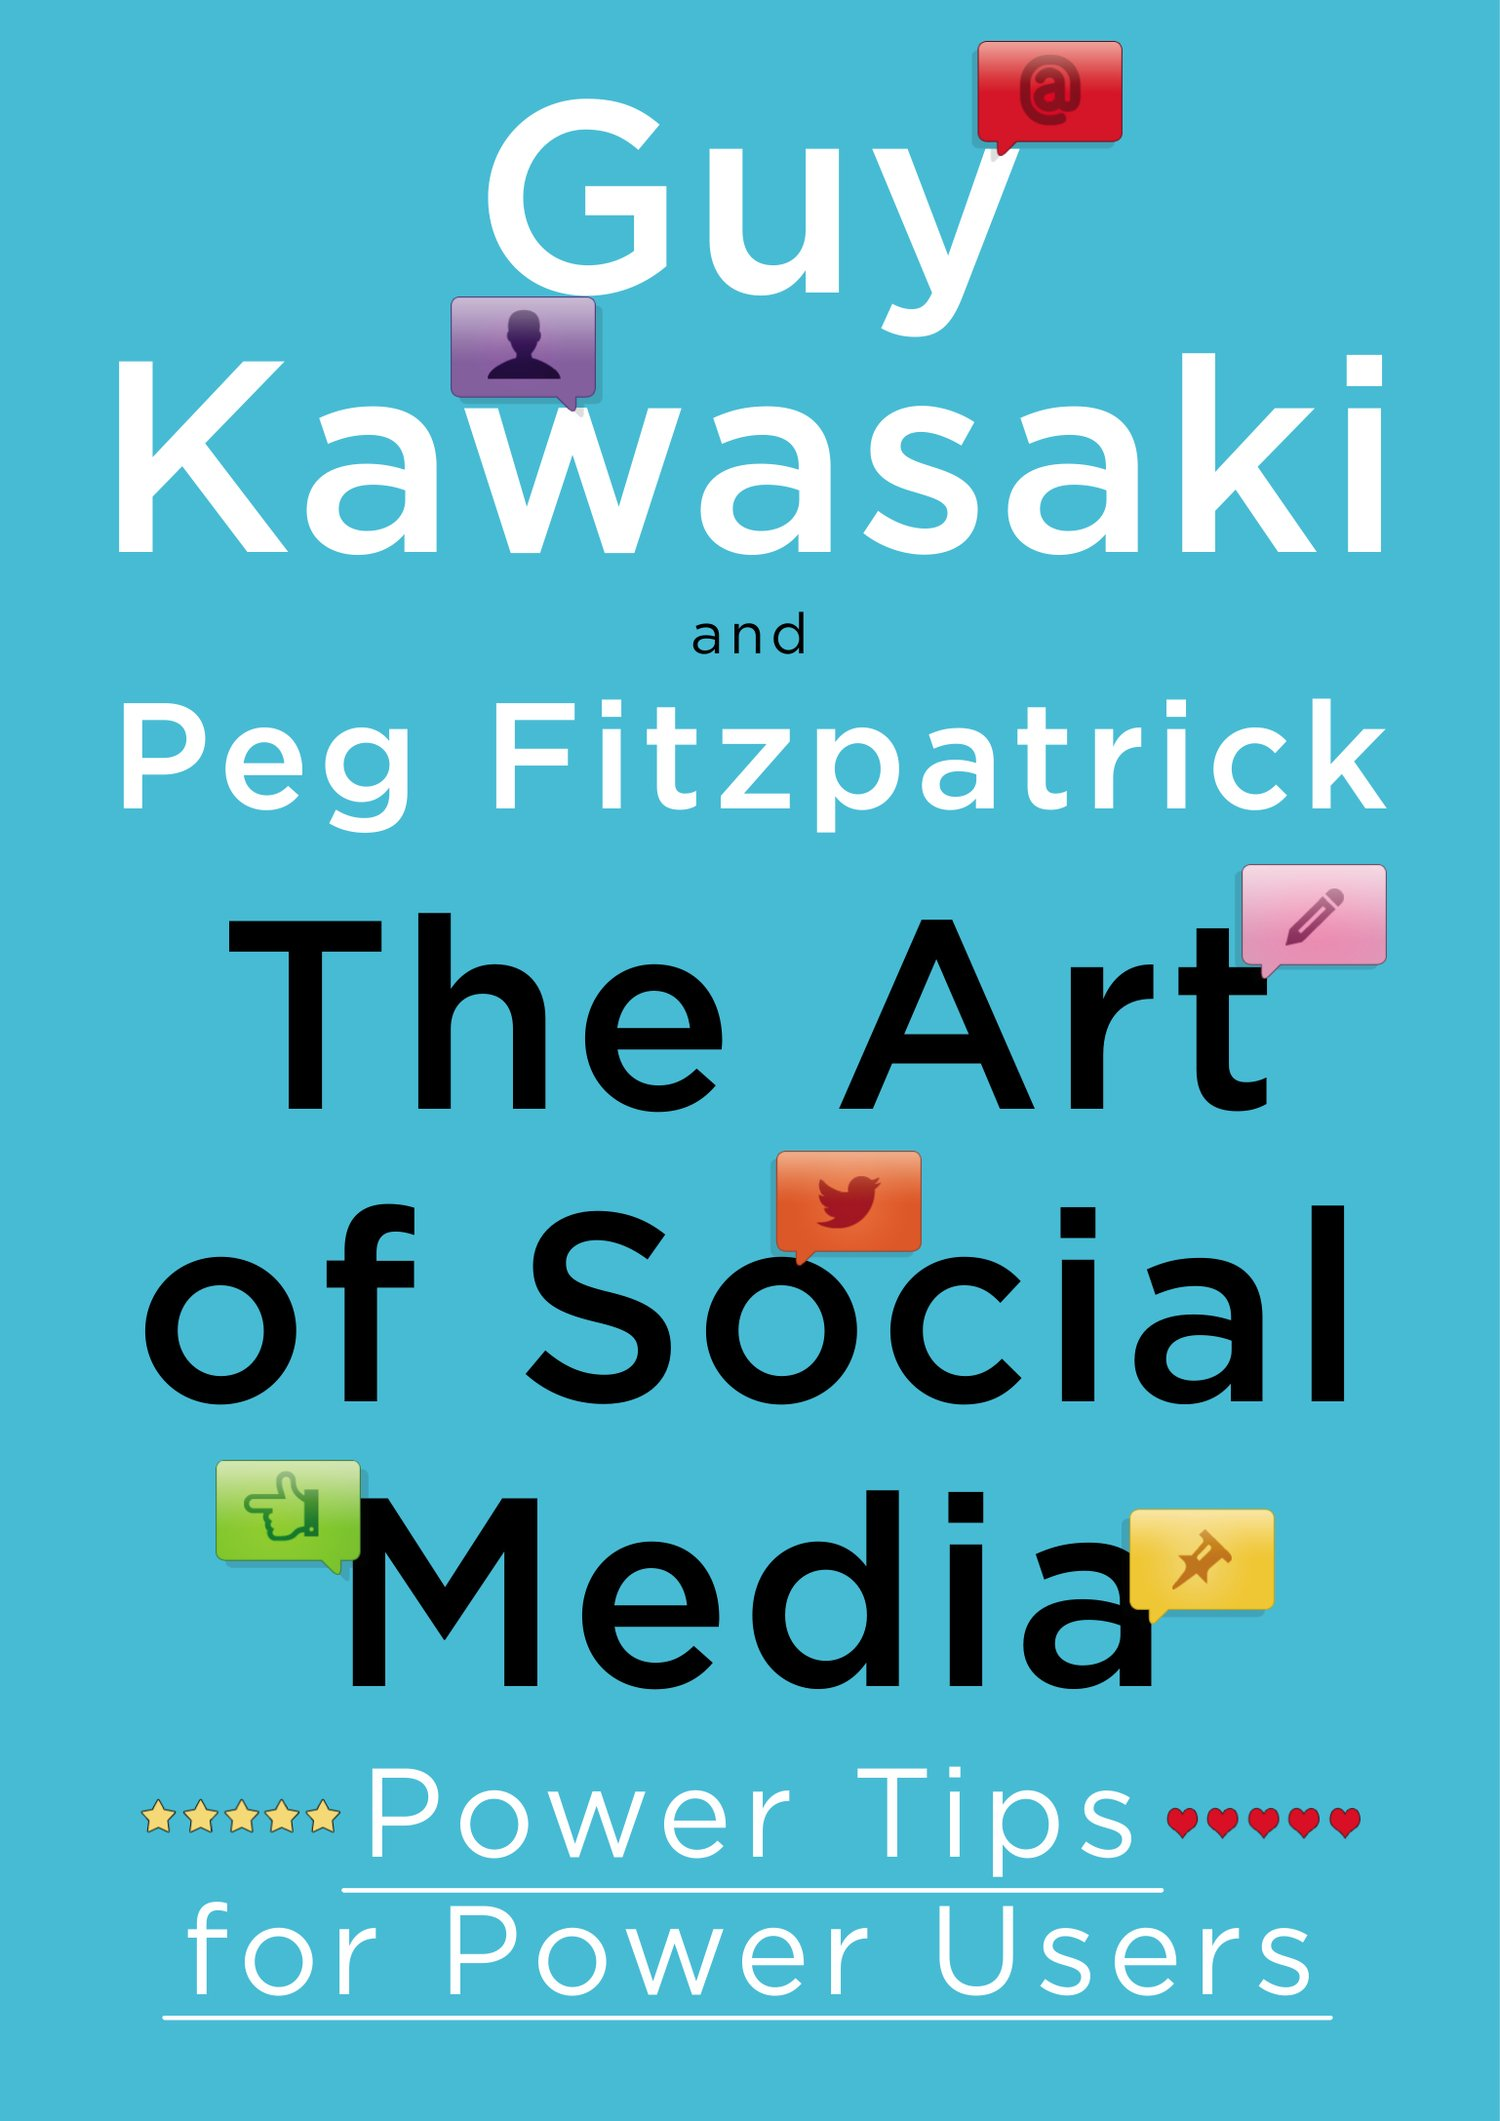 The_Art_of_Social_Media